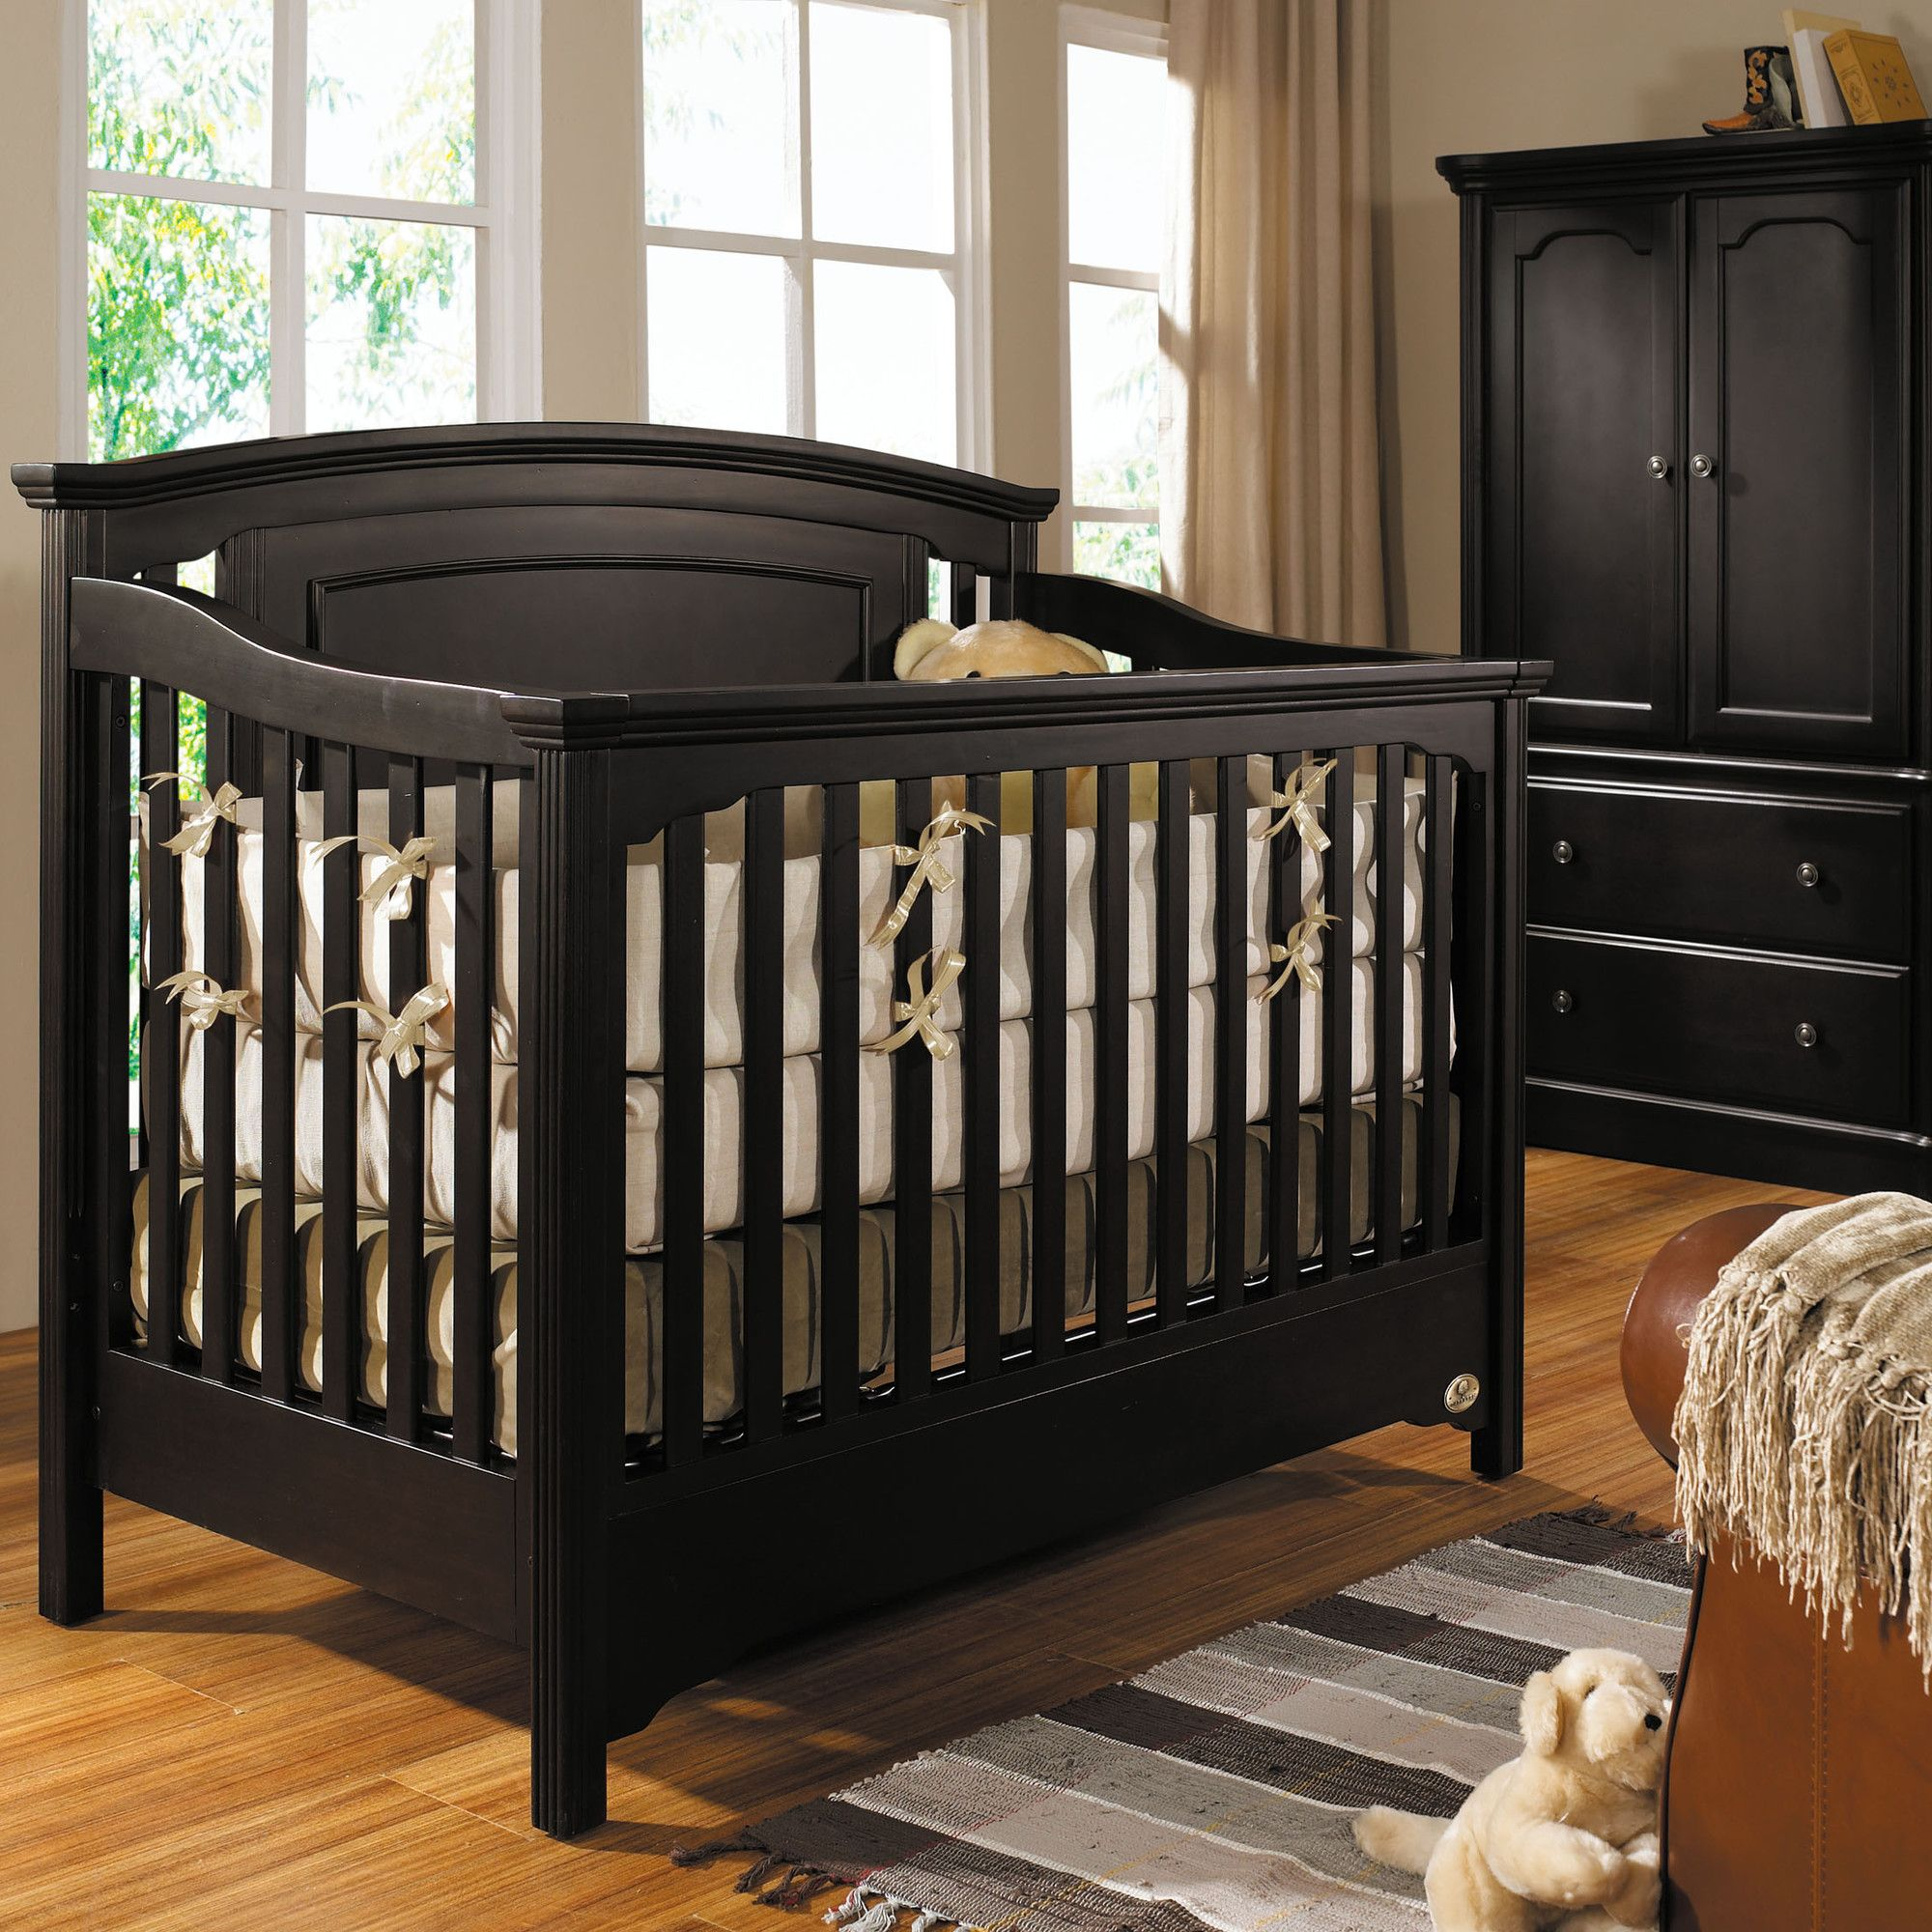 Pali crib for sale used - Brody 5